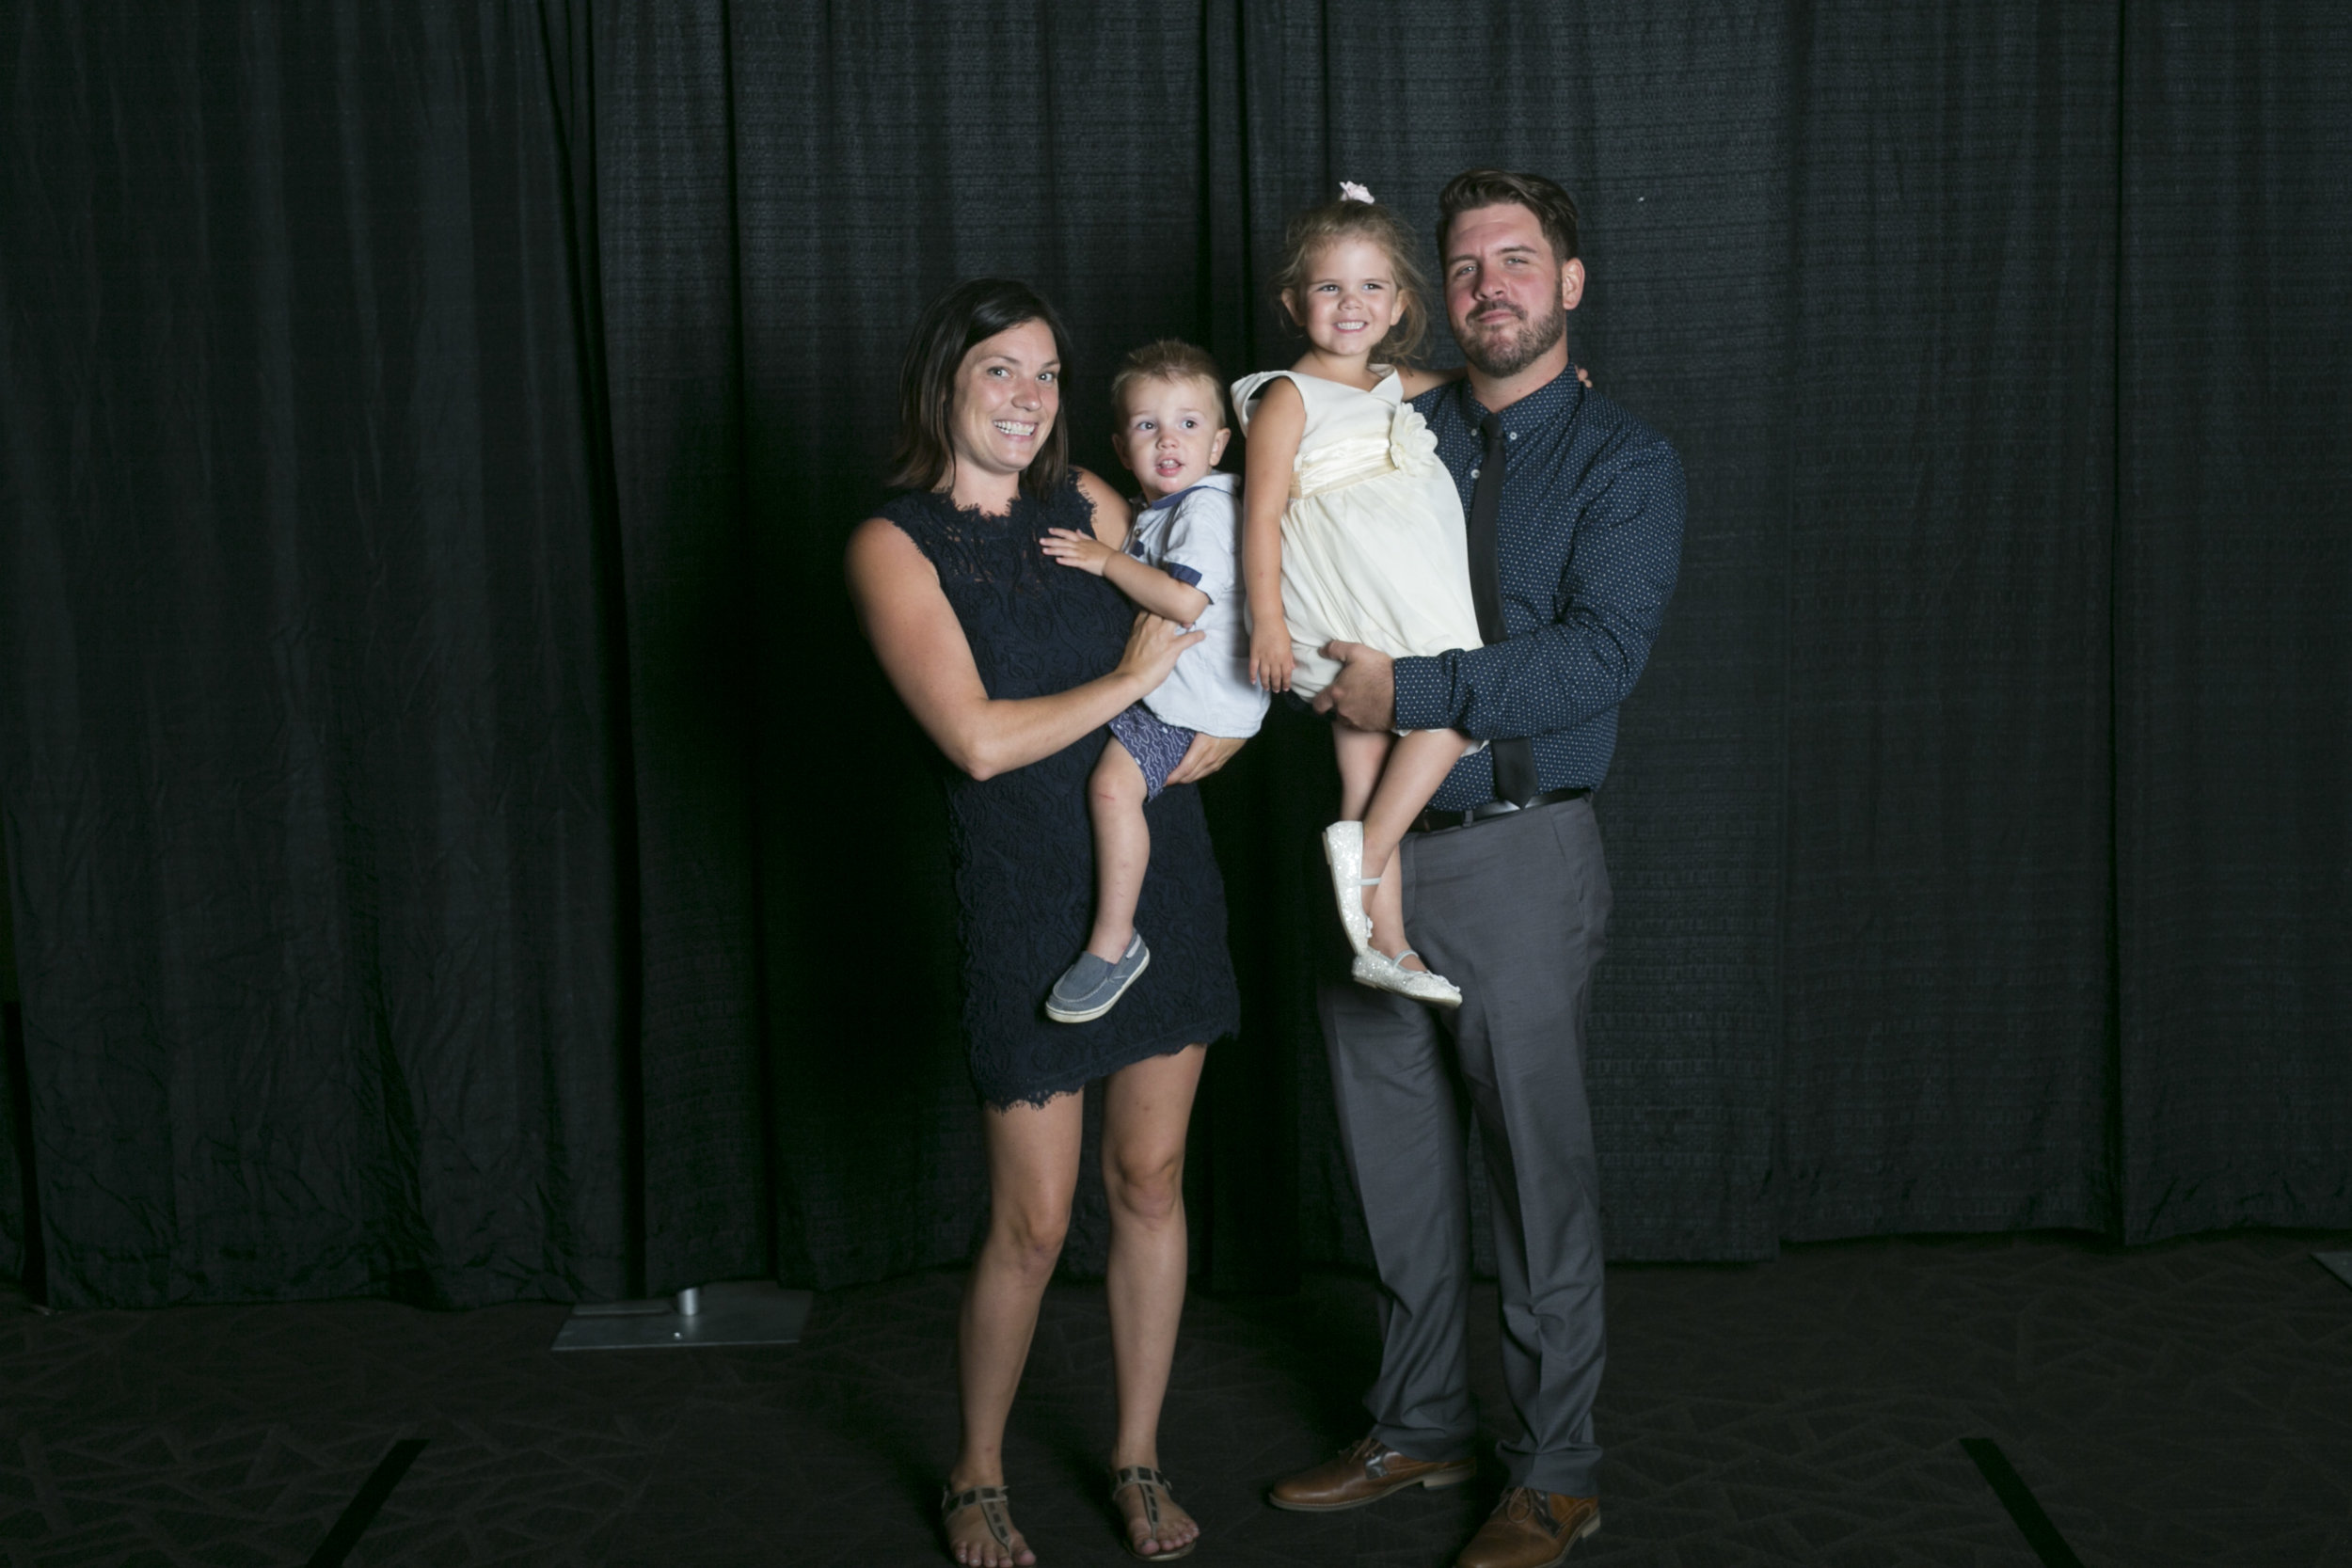 wedding photo booth-148.jpg